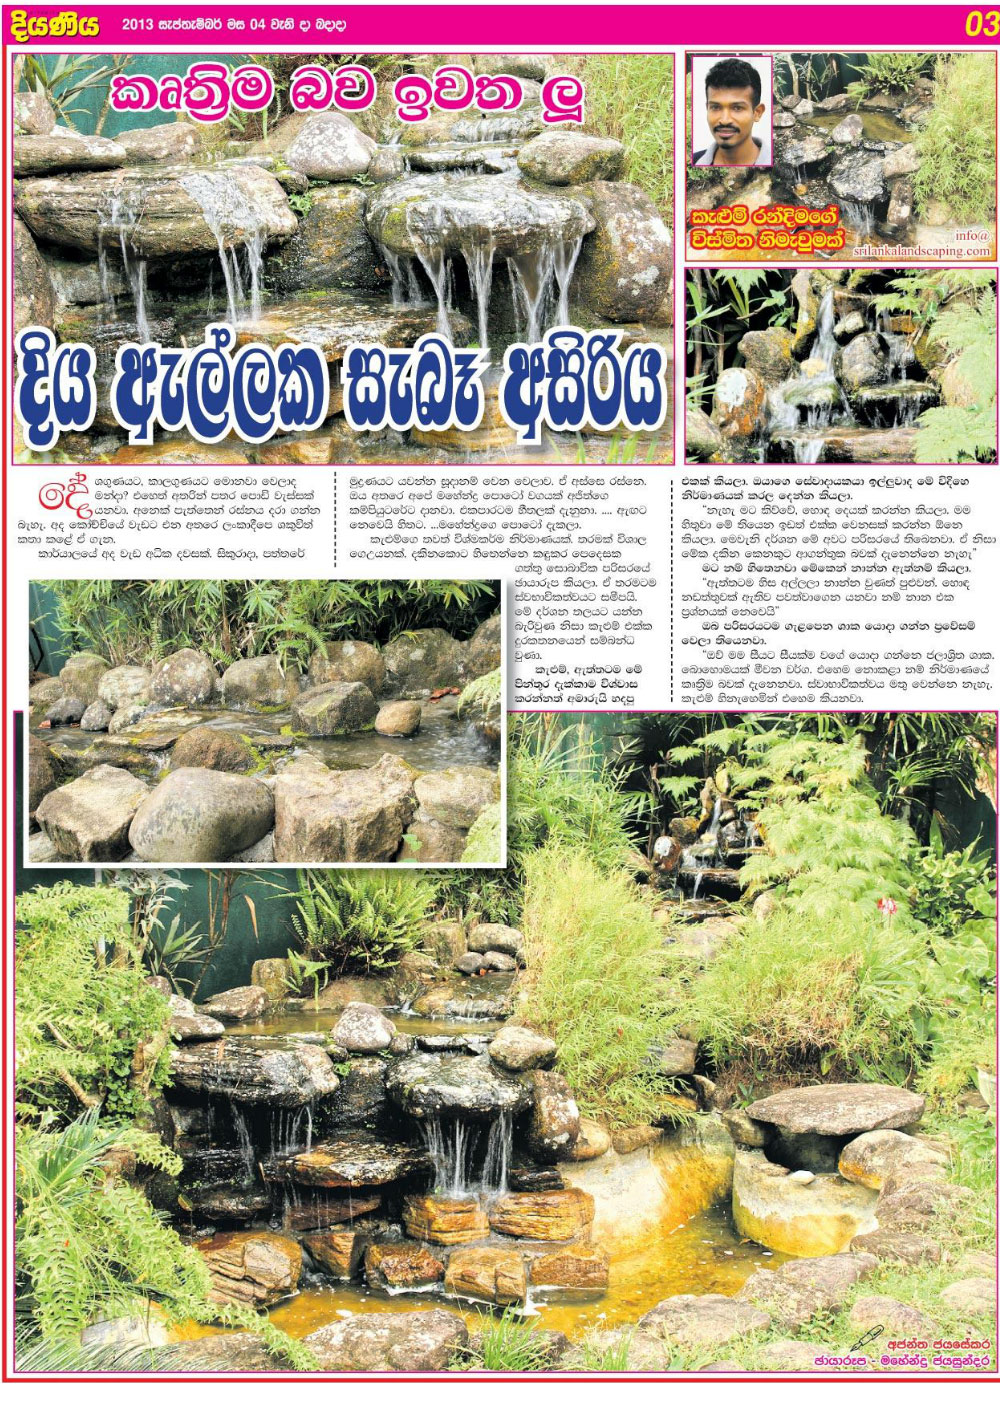 Diyaniya - NEWS PAPER - 04 Sep 2013